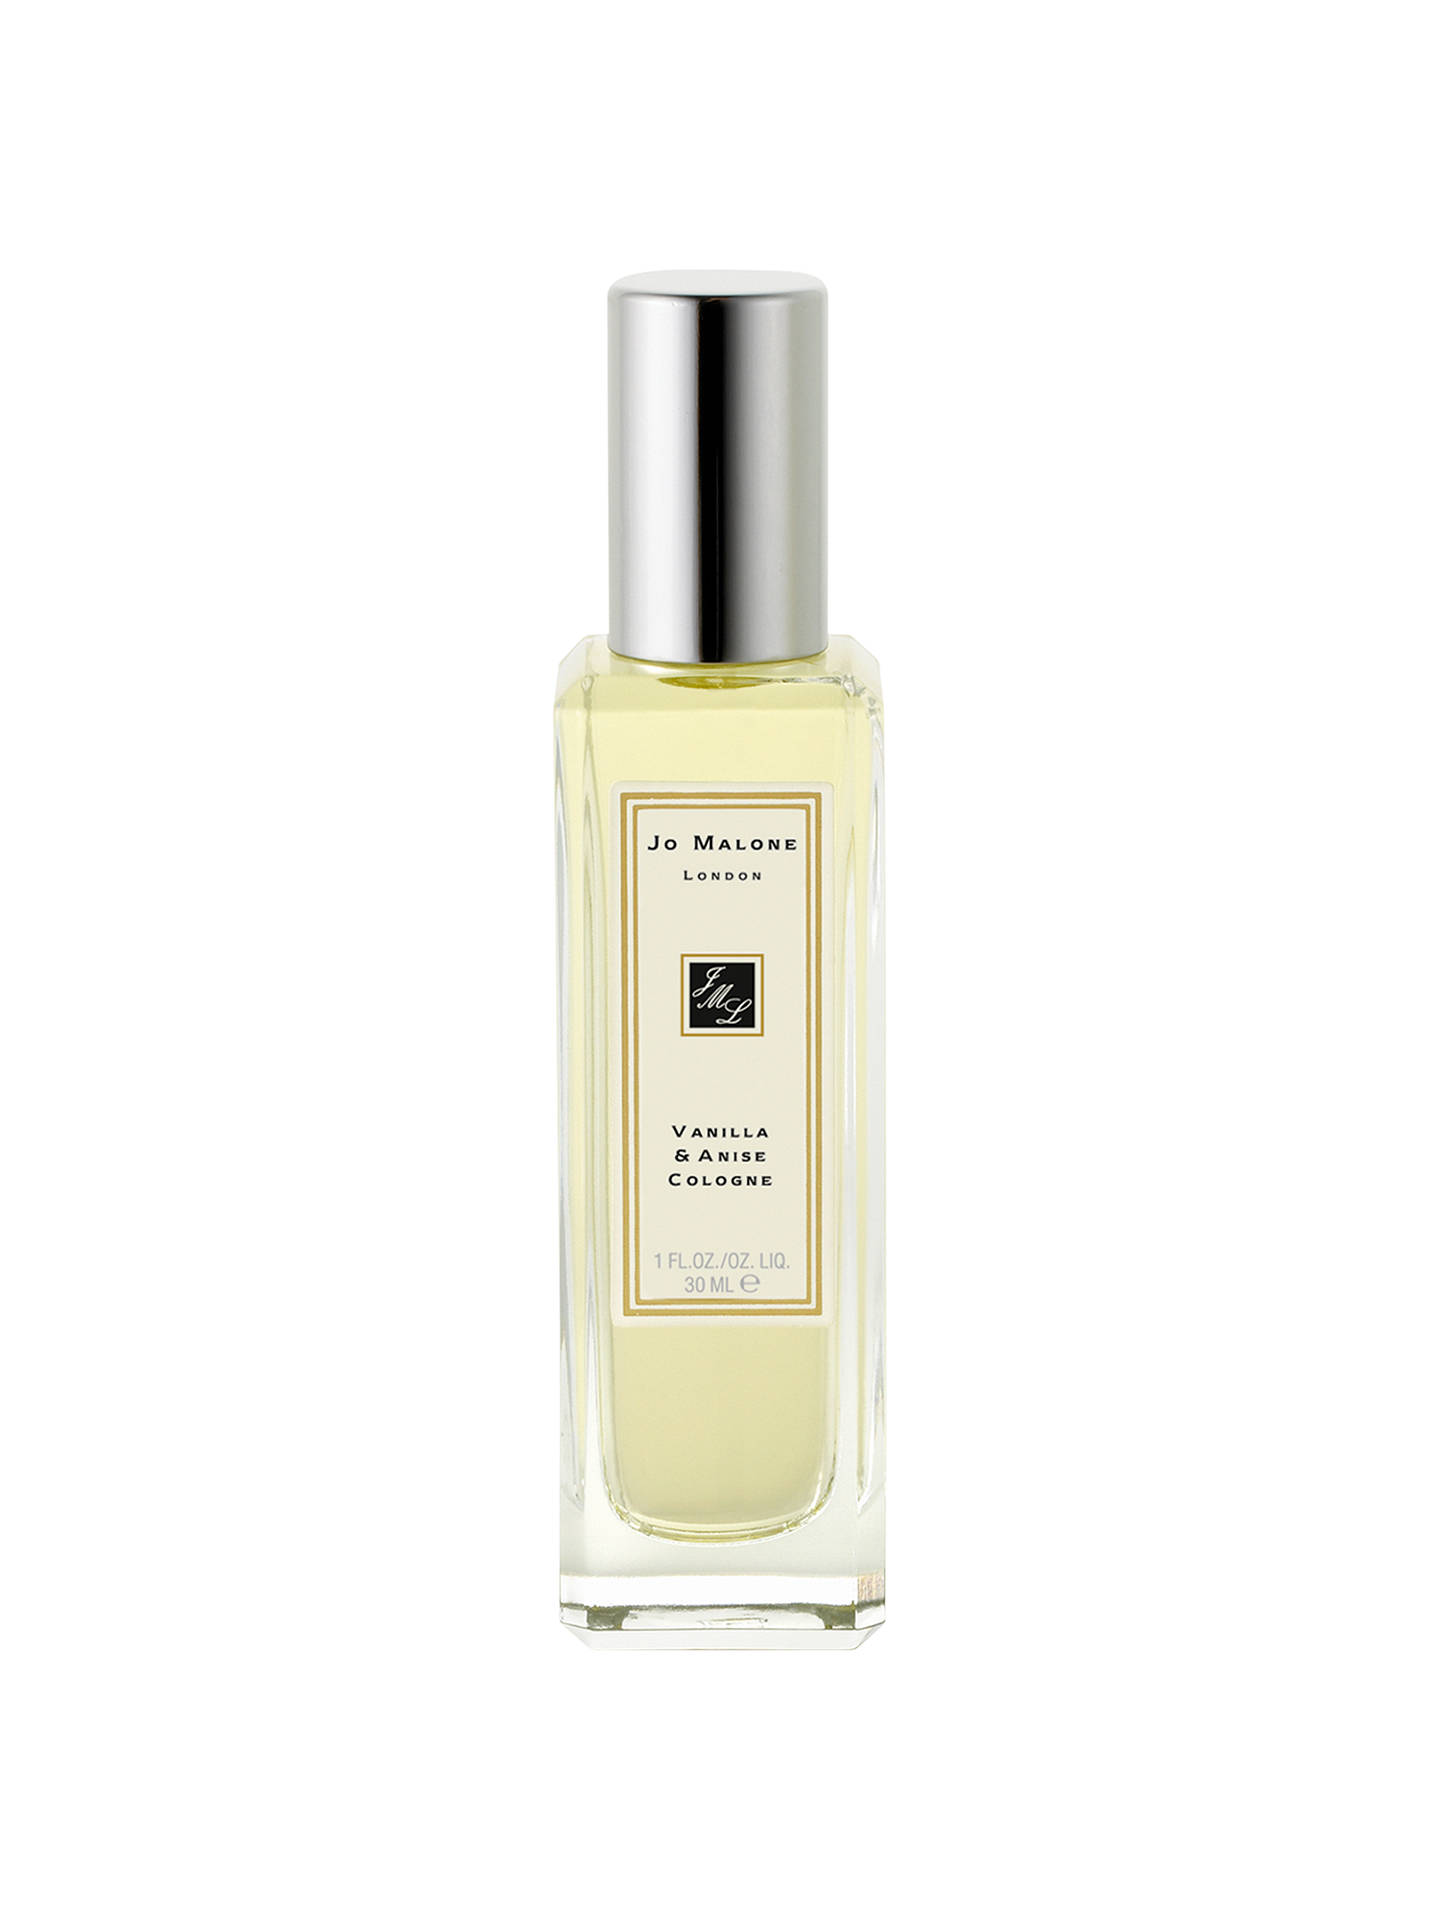 BuyJo Malone London Vanilla & Anise Cologne, 30ml Online at johnlewis.com